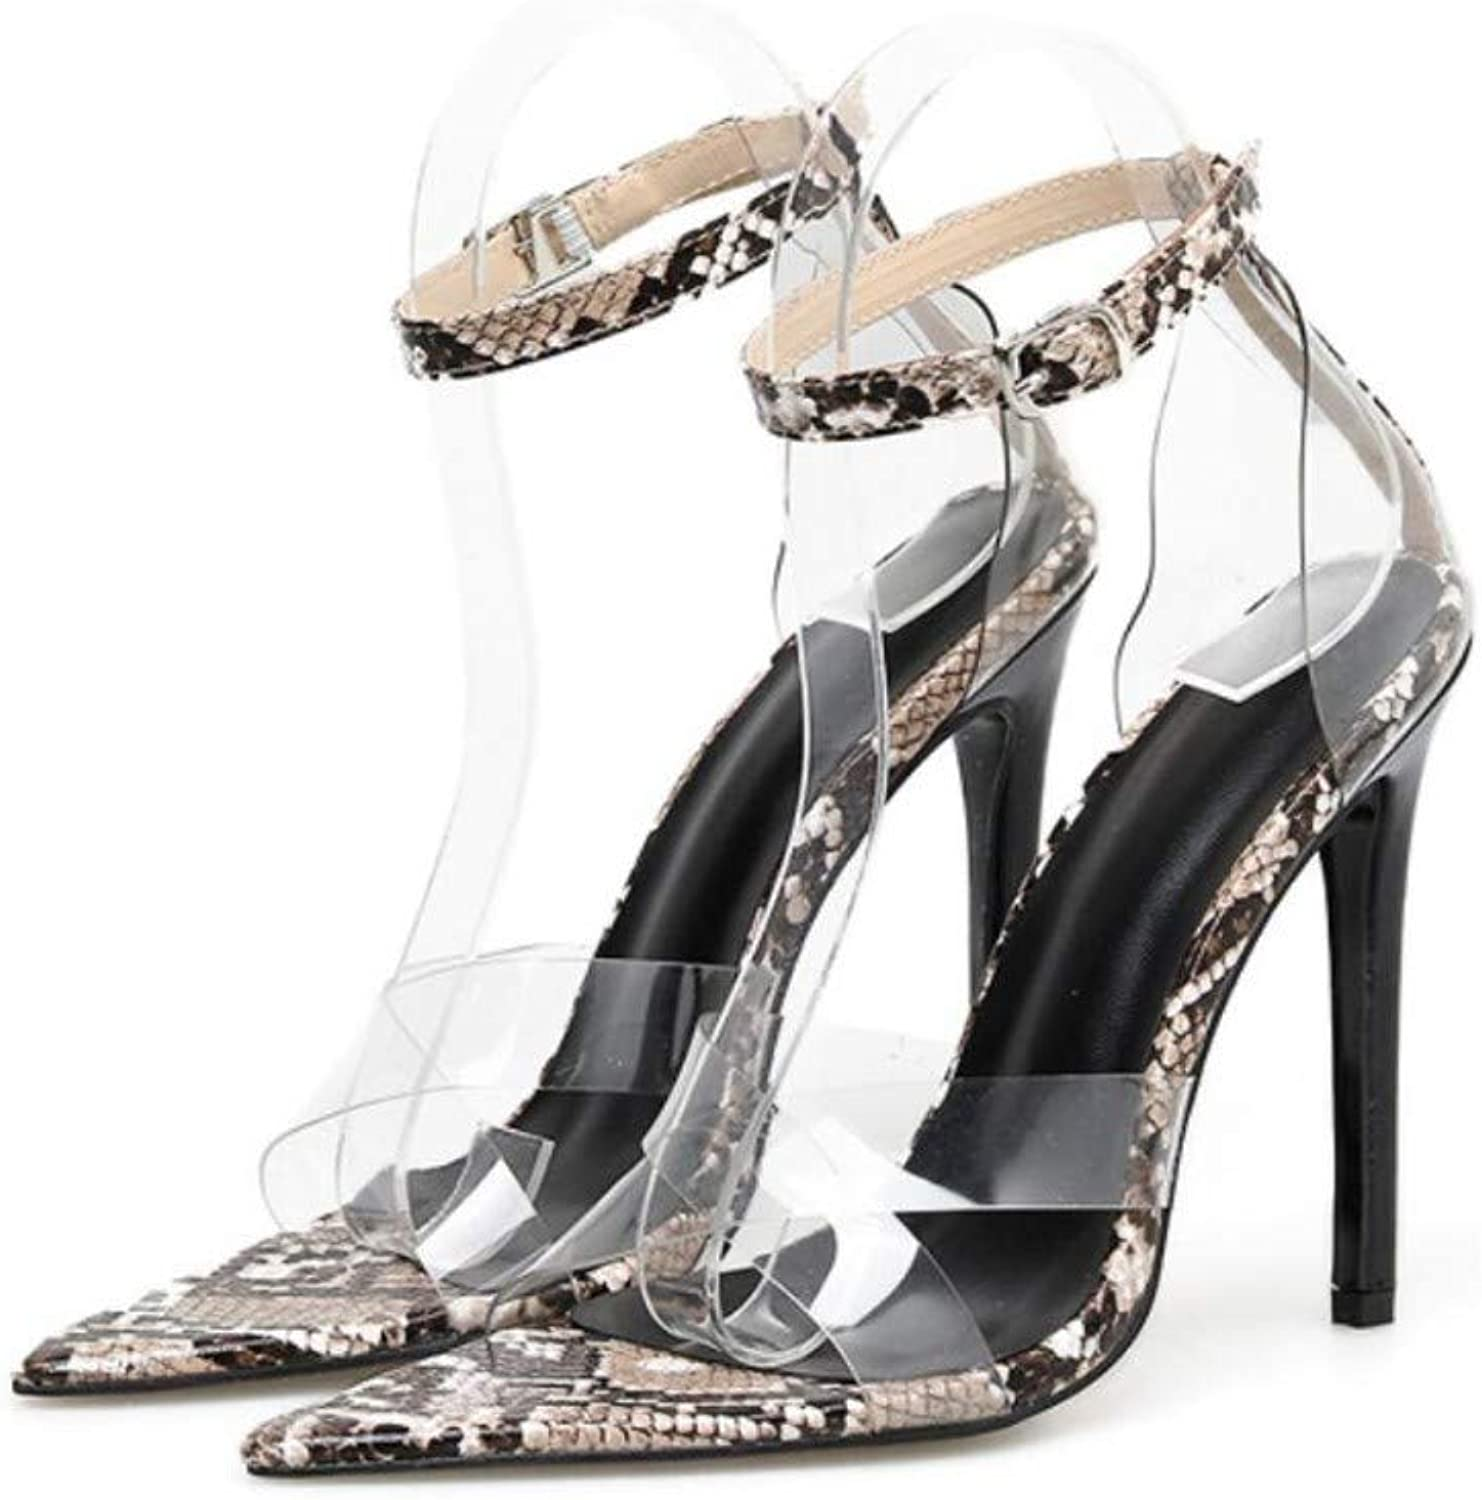 JQfashion Ladies'High-Heeled Sandals Transparent Sexy Cross Snake Patten Pointed Thin-Heeled Summer